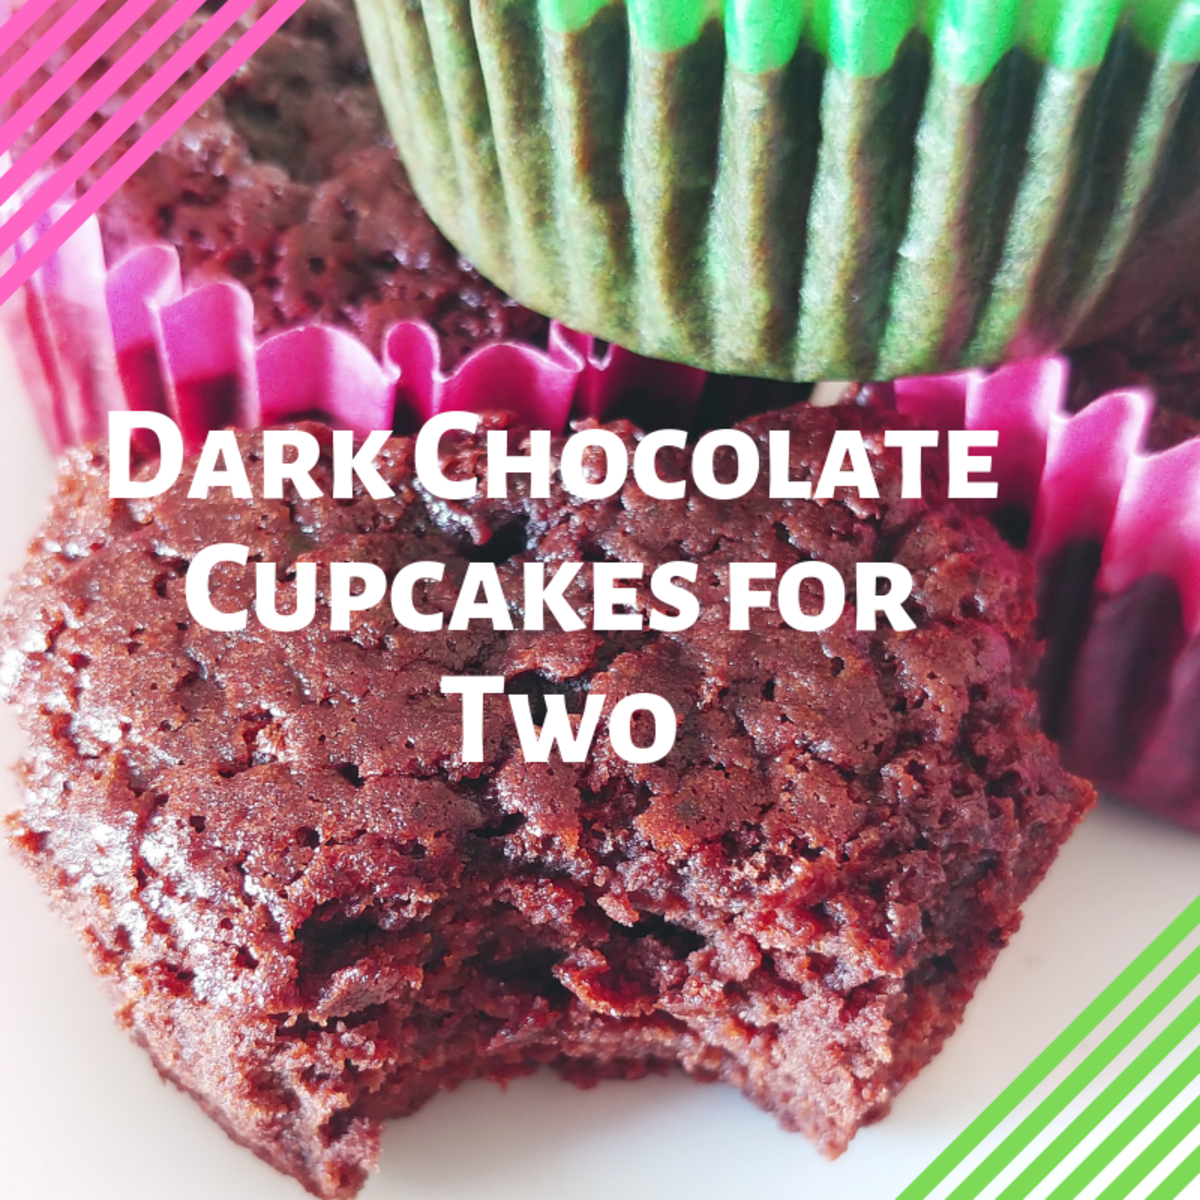 Dark Chocolate Cupcakes for Two